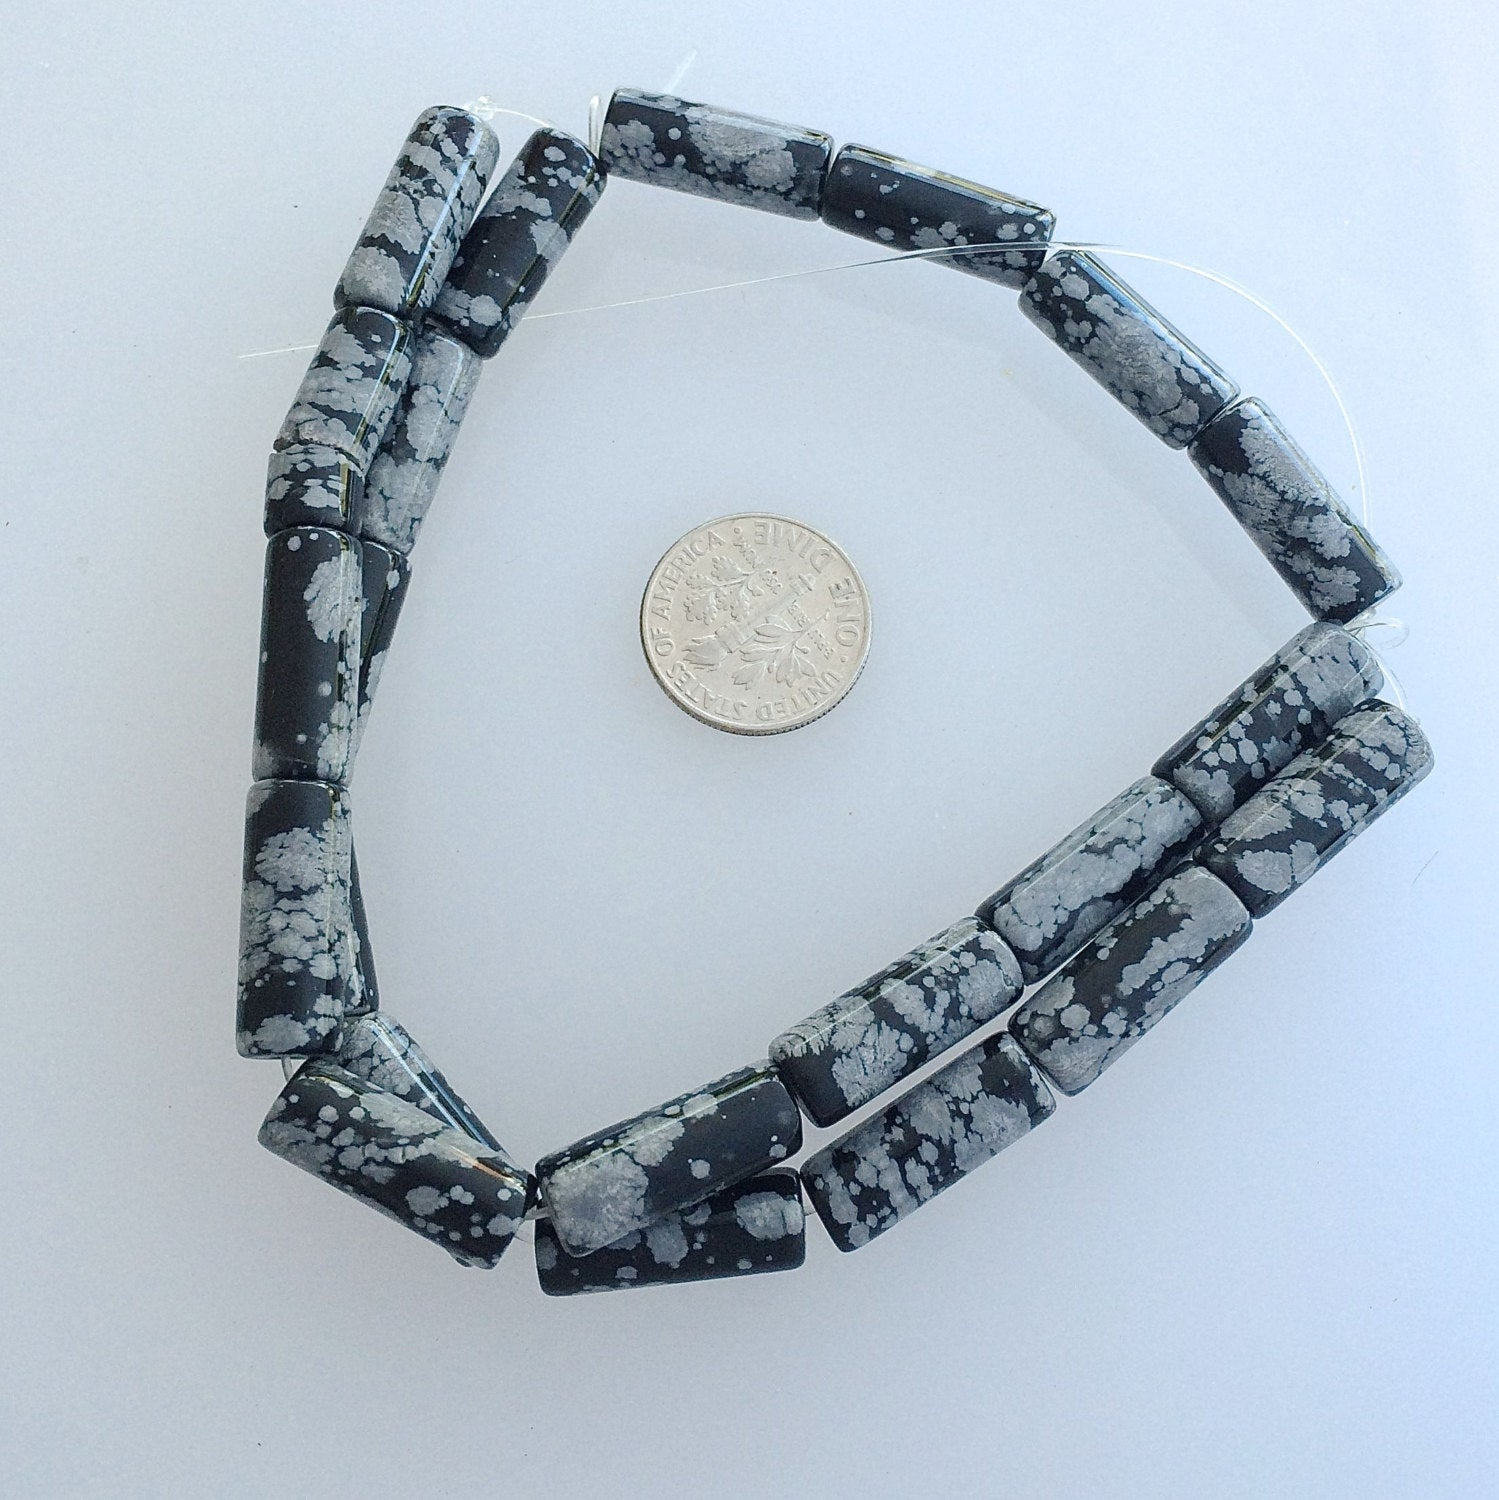 Snow Flake Obsidian Strands | Beads